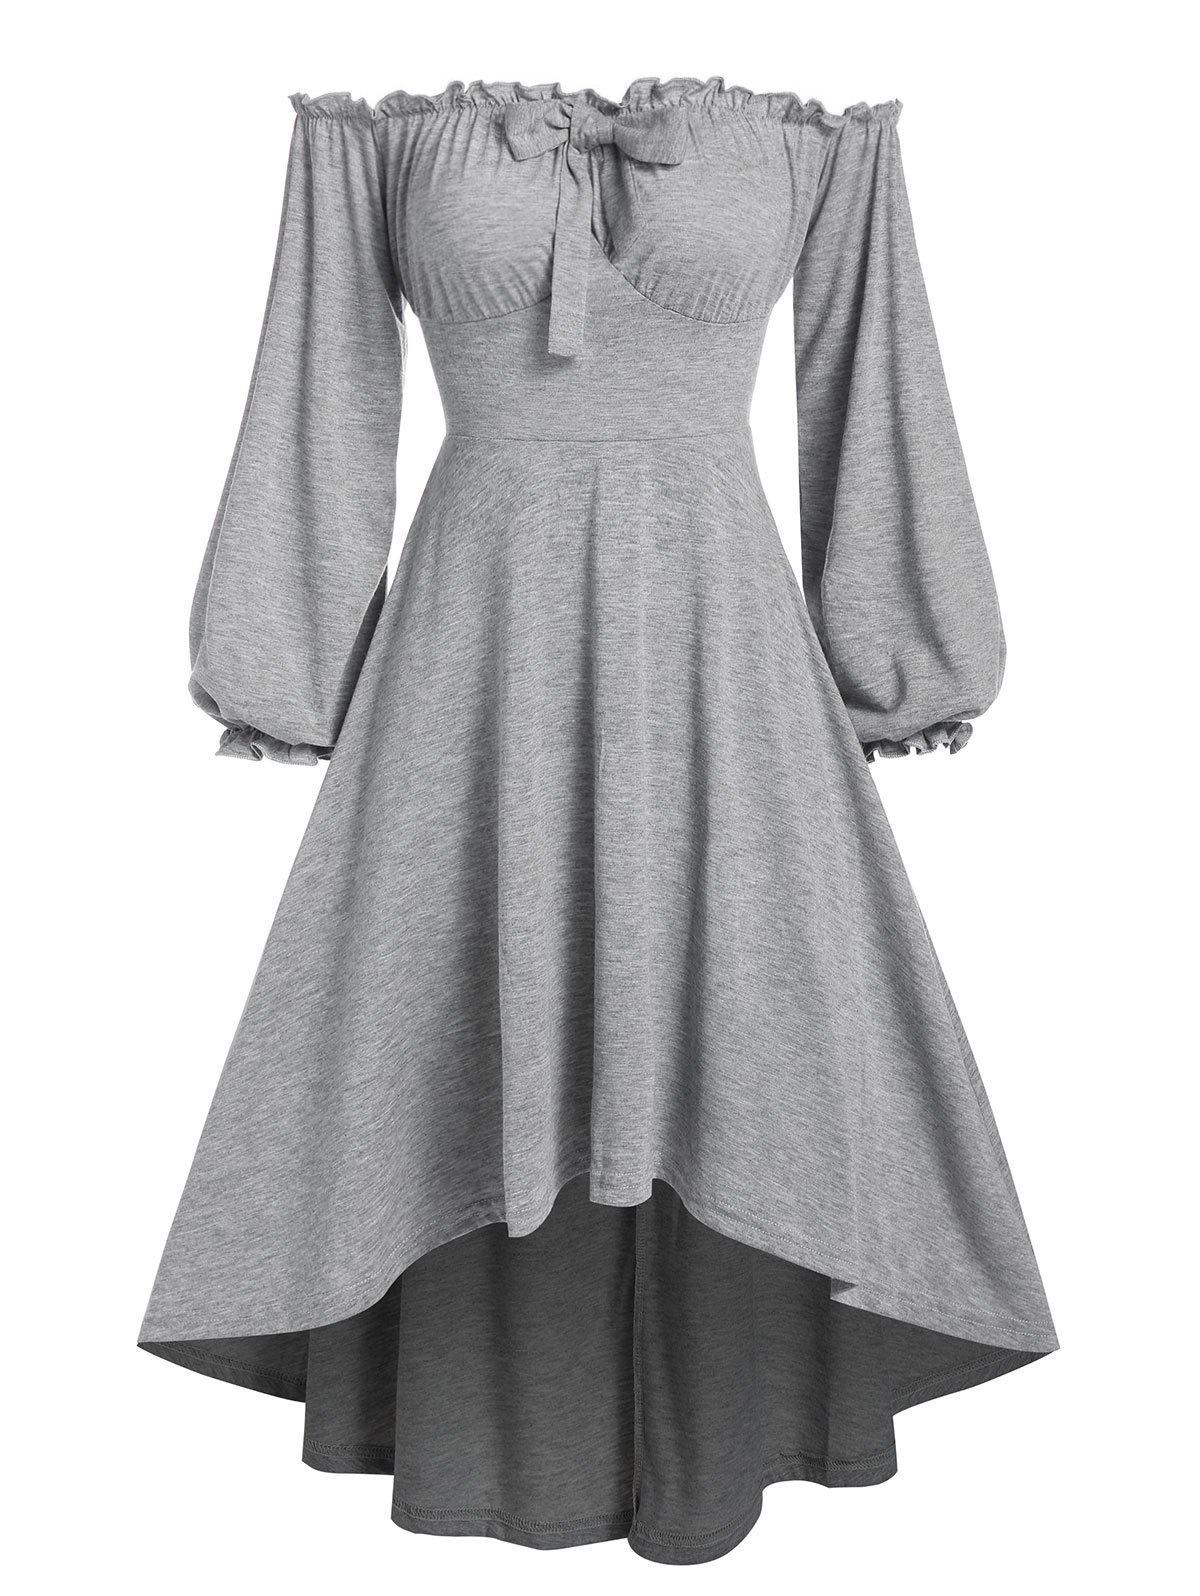 Off The Shoulder Bowknot High Low Dress - GRAY M